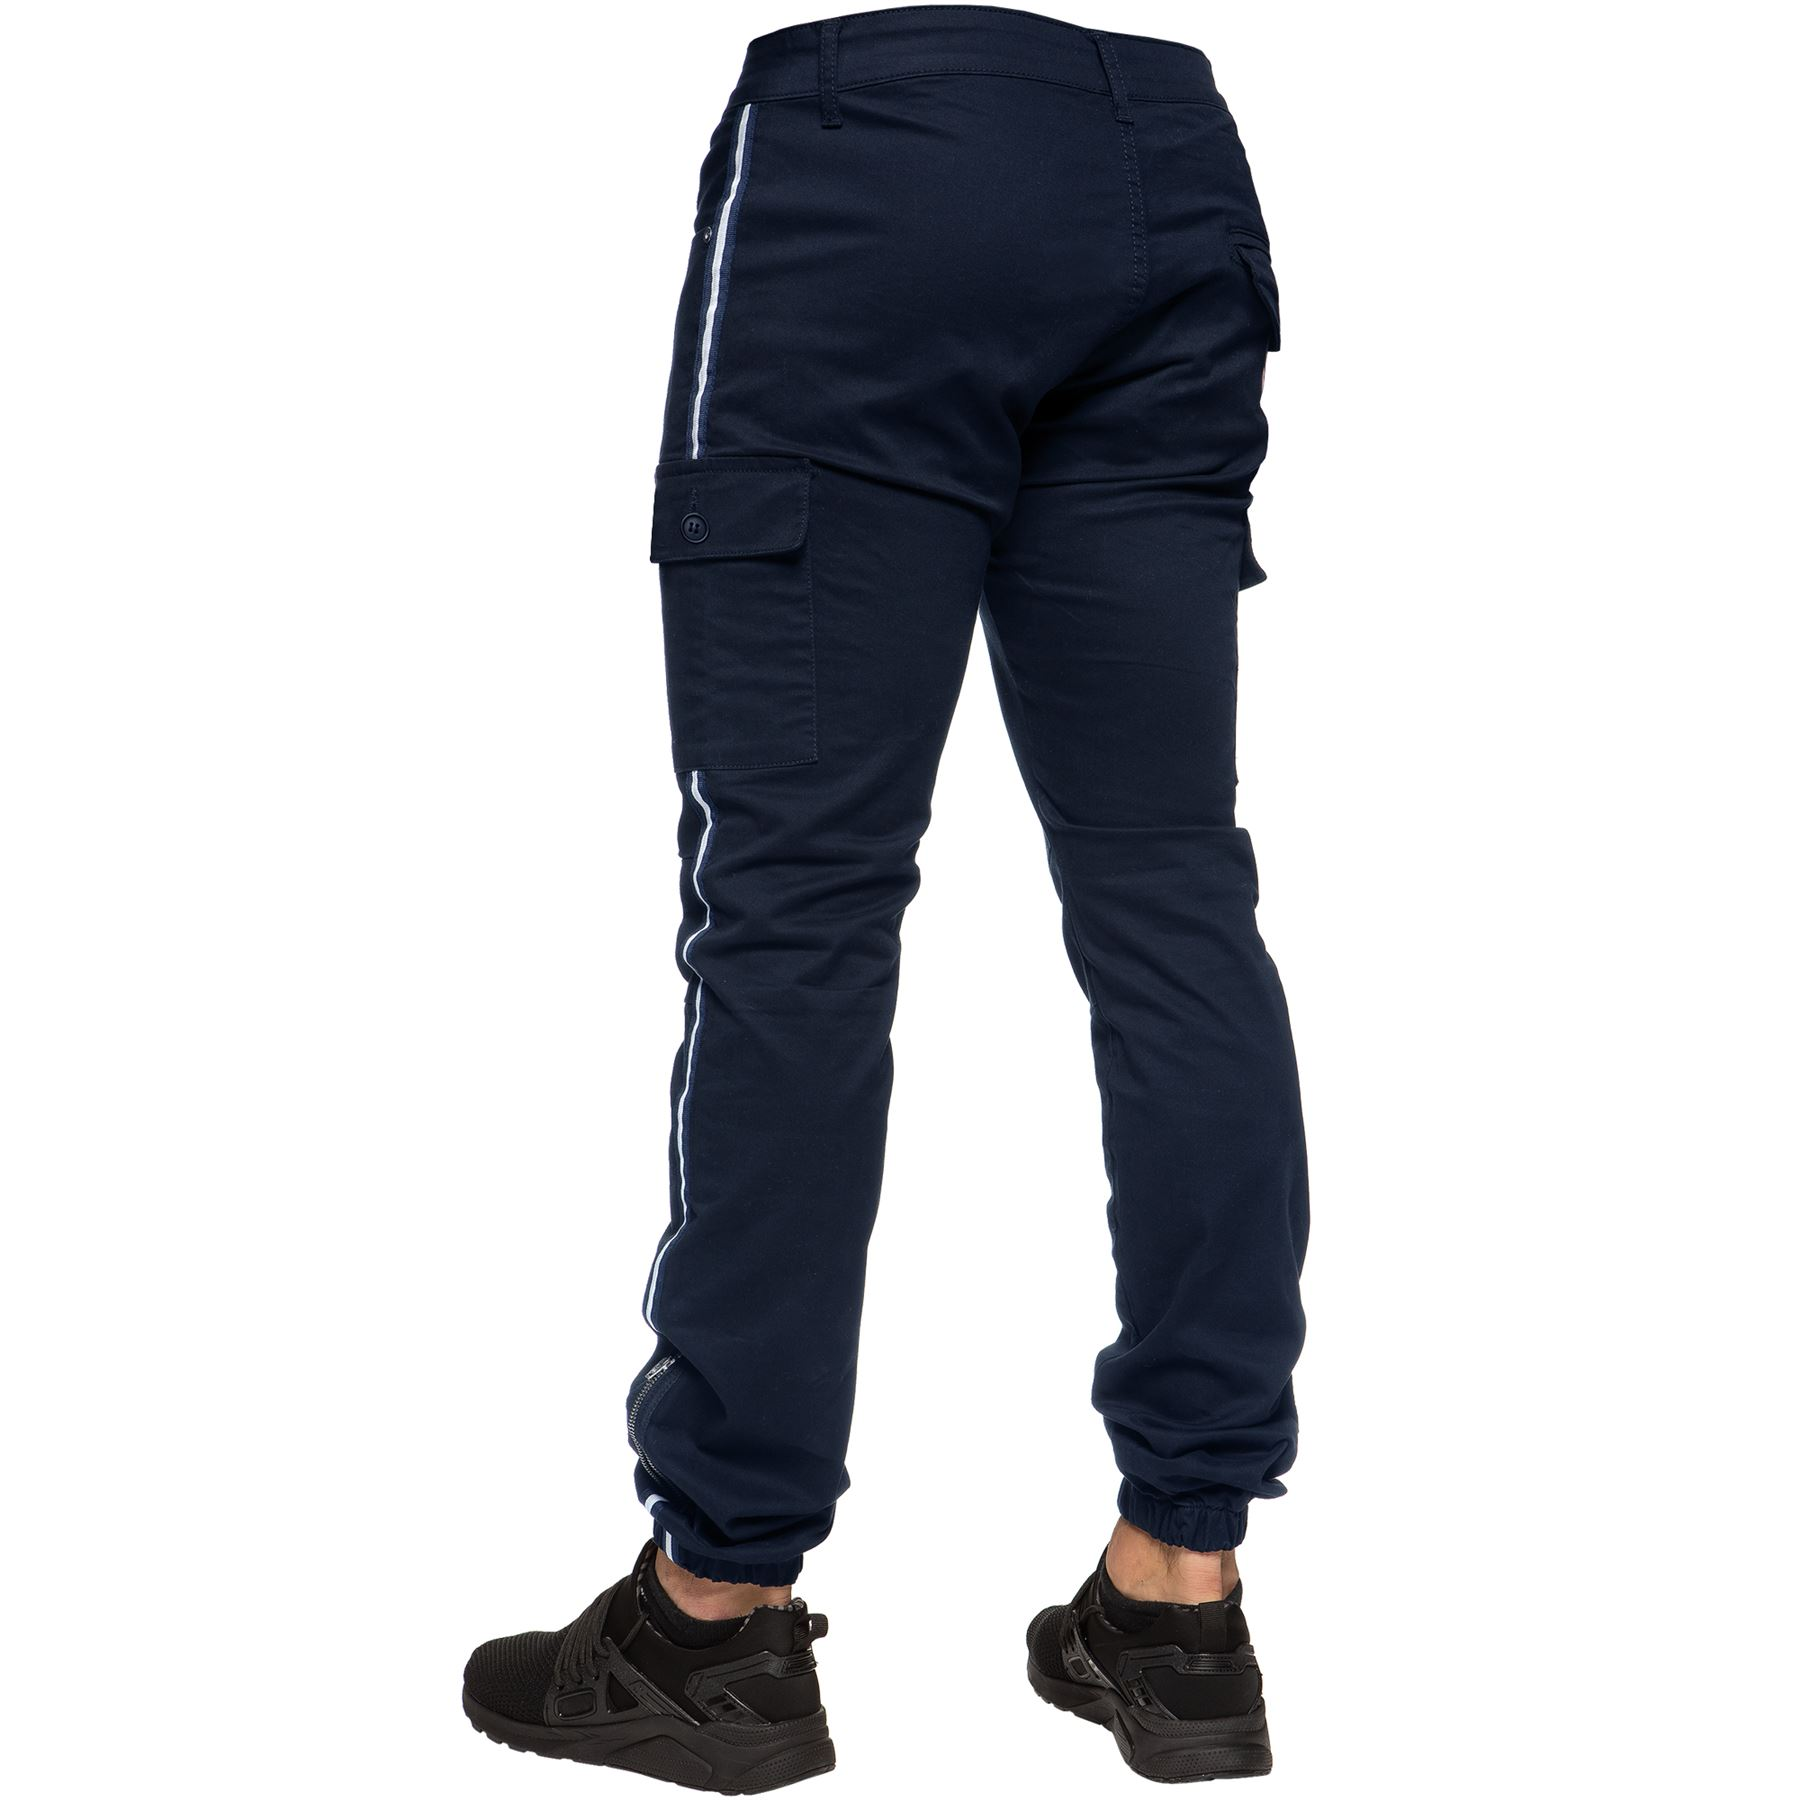 Enzo-Jeans-Mens-Combat-Trousers-Cargo-Chinos-Slim-Stretch-Cuffed-Joggers-Pants thumbnail 11